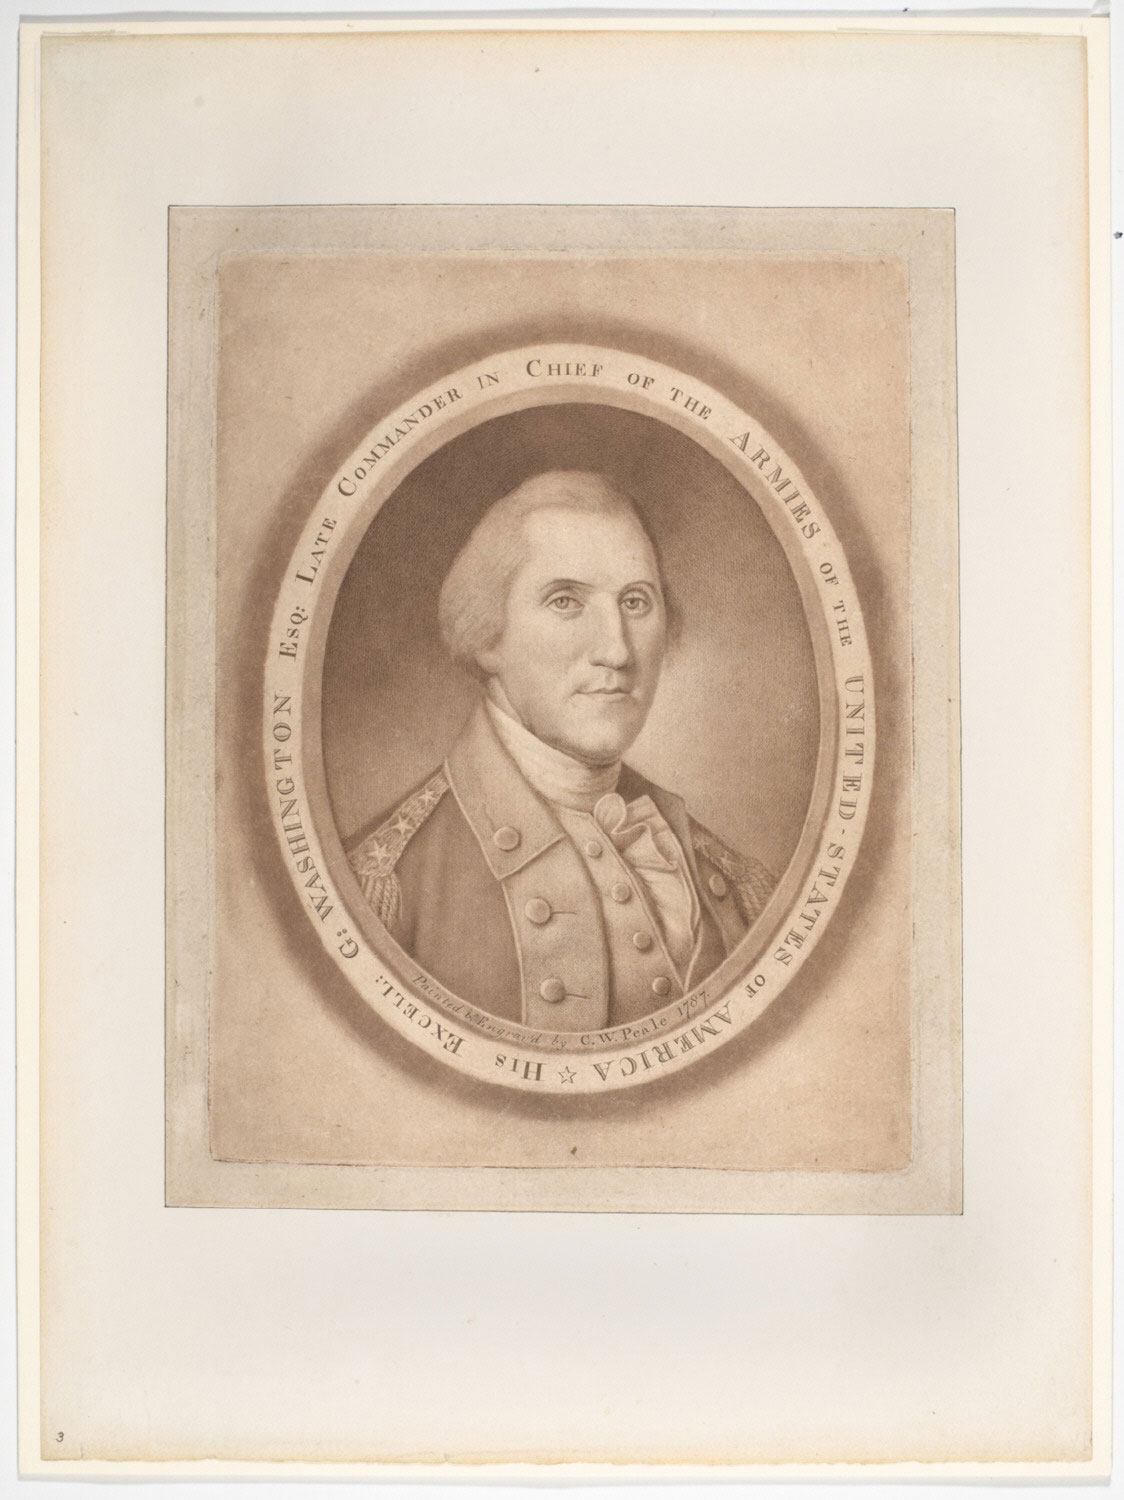 His Excell. G. Washington Esq. Late Commander in Chief of the Armies of the United-States of America